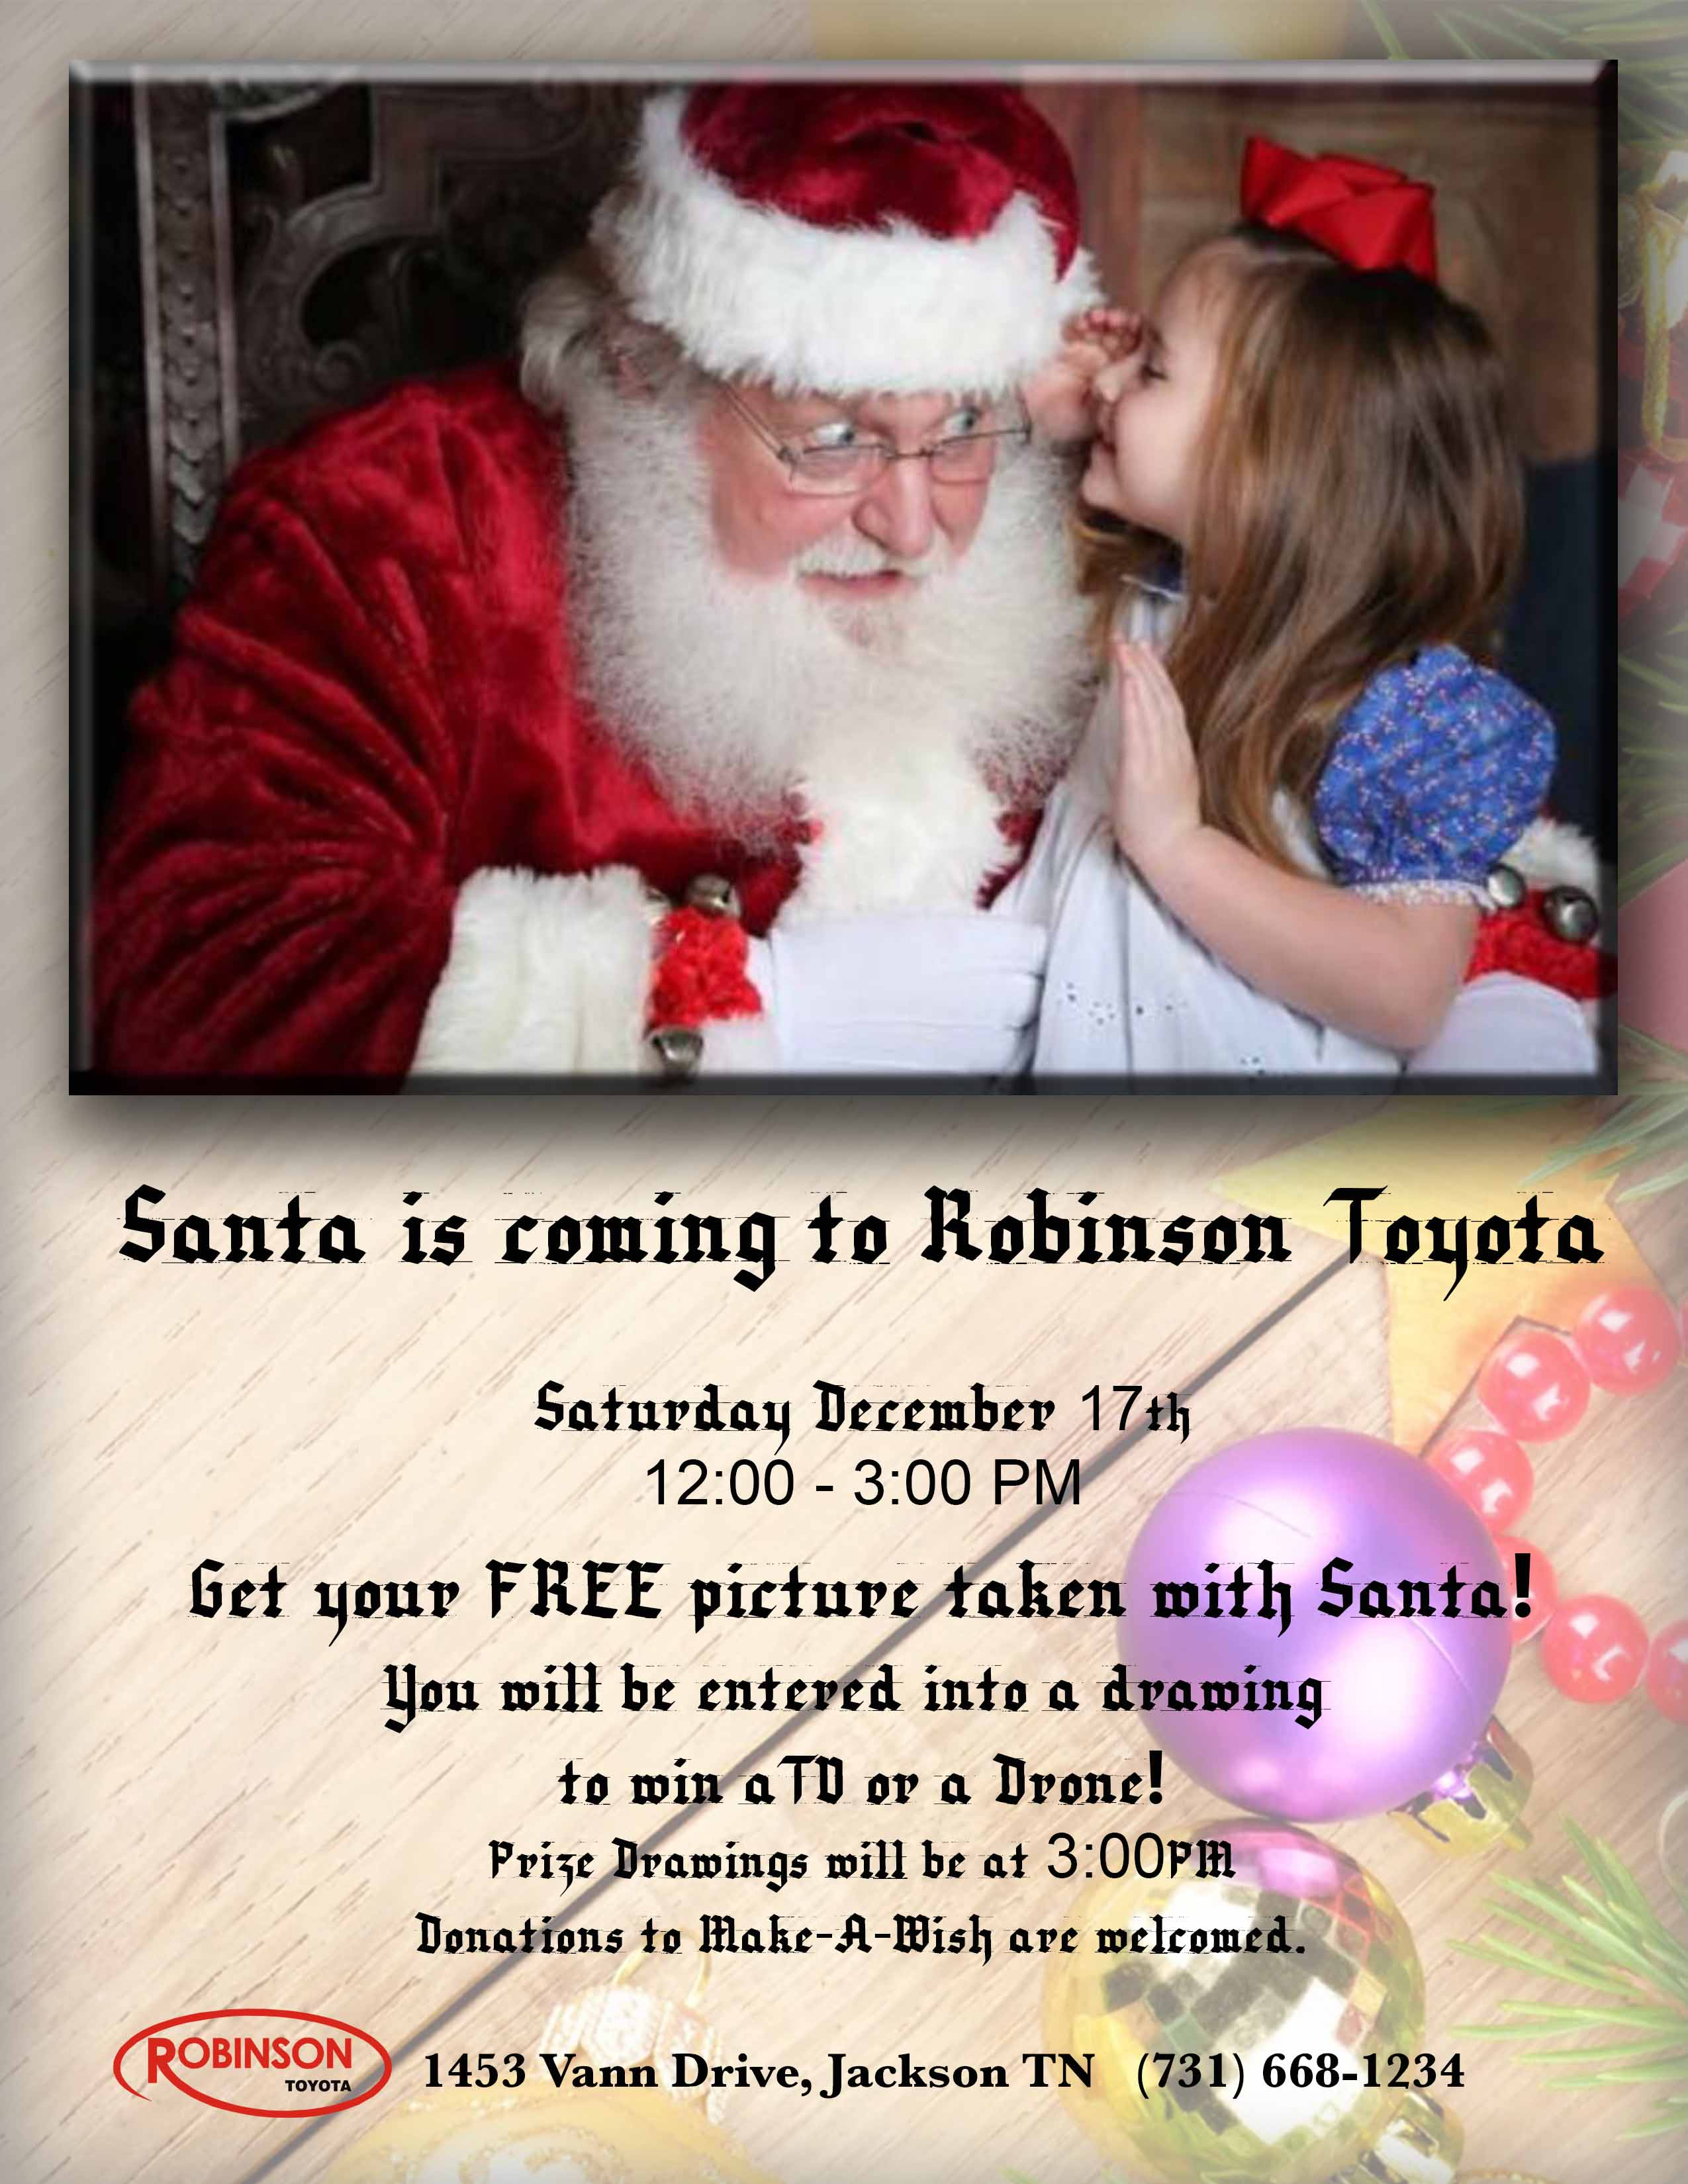 Come Meet Santa on Saturday December 17th from 12:00-3:00PM